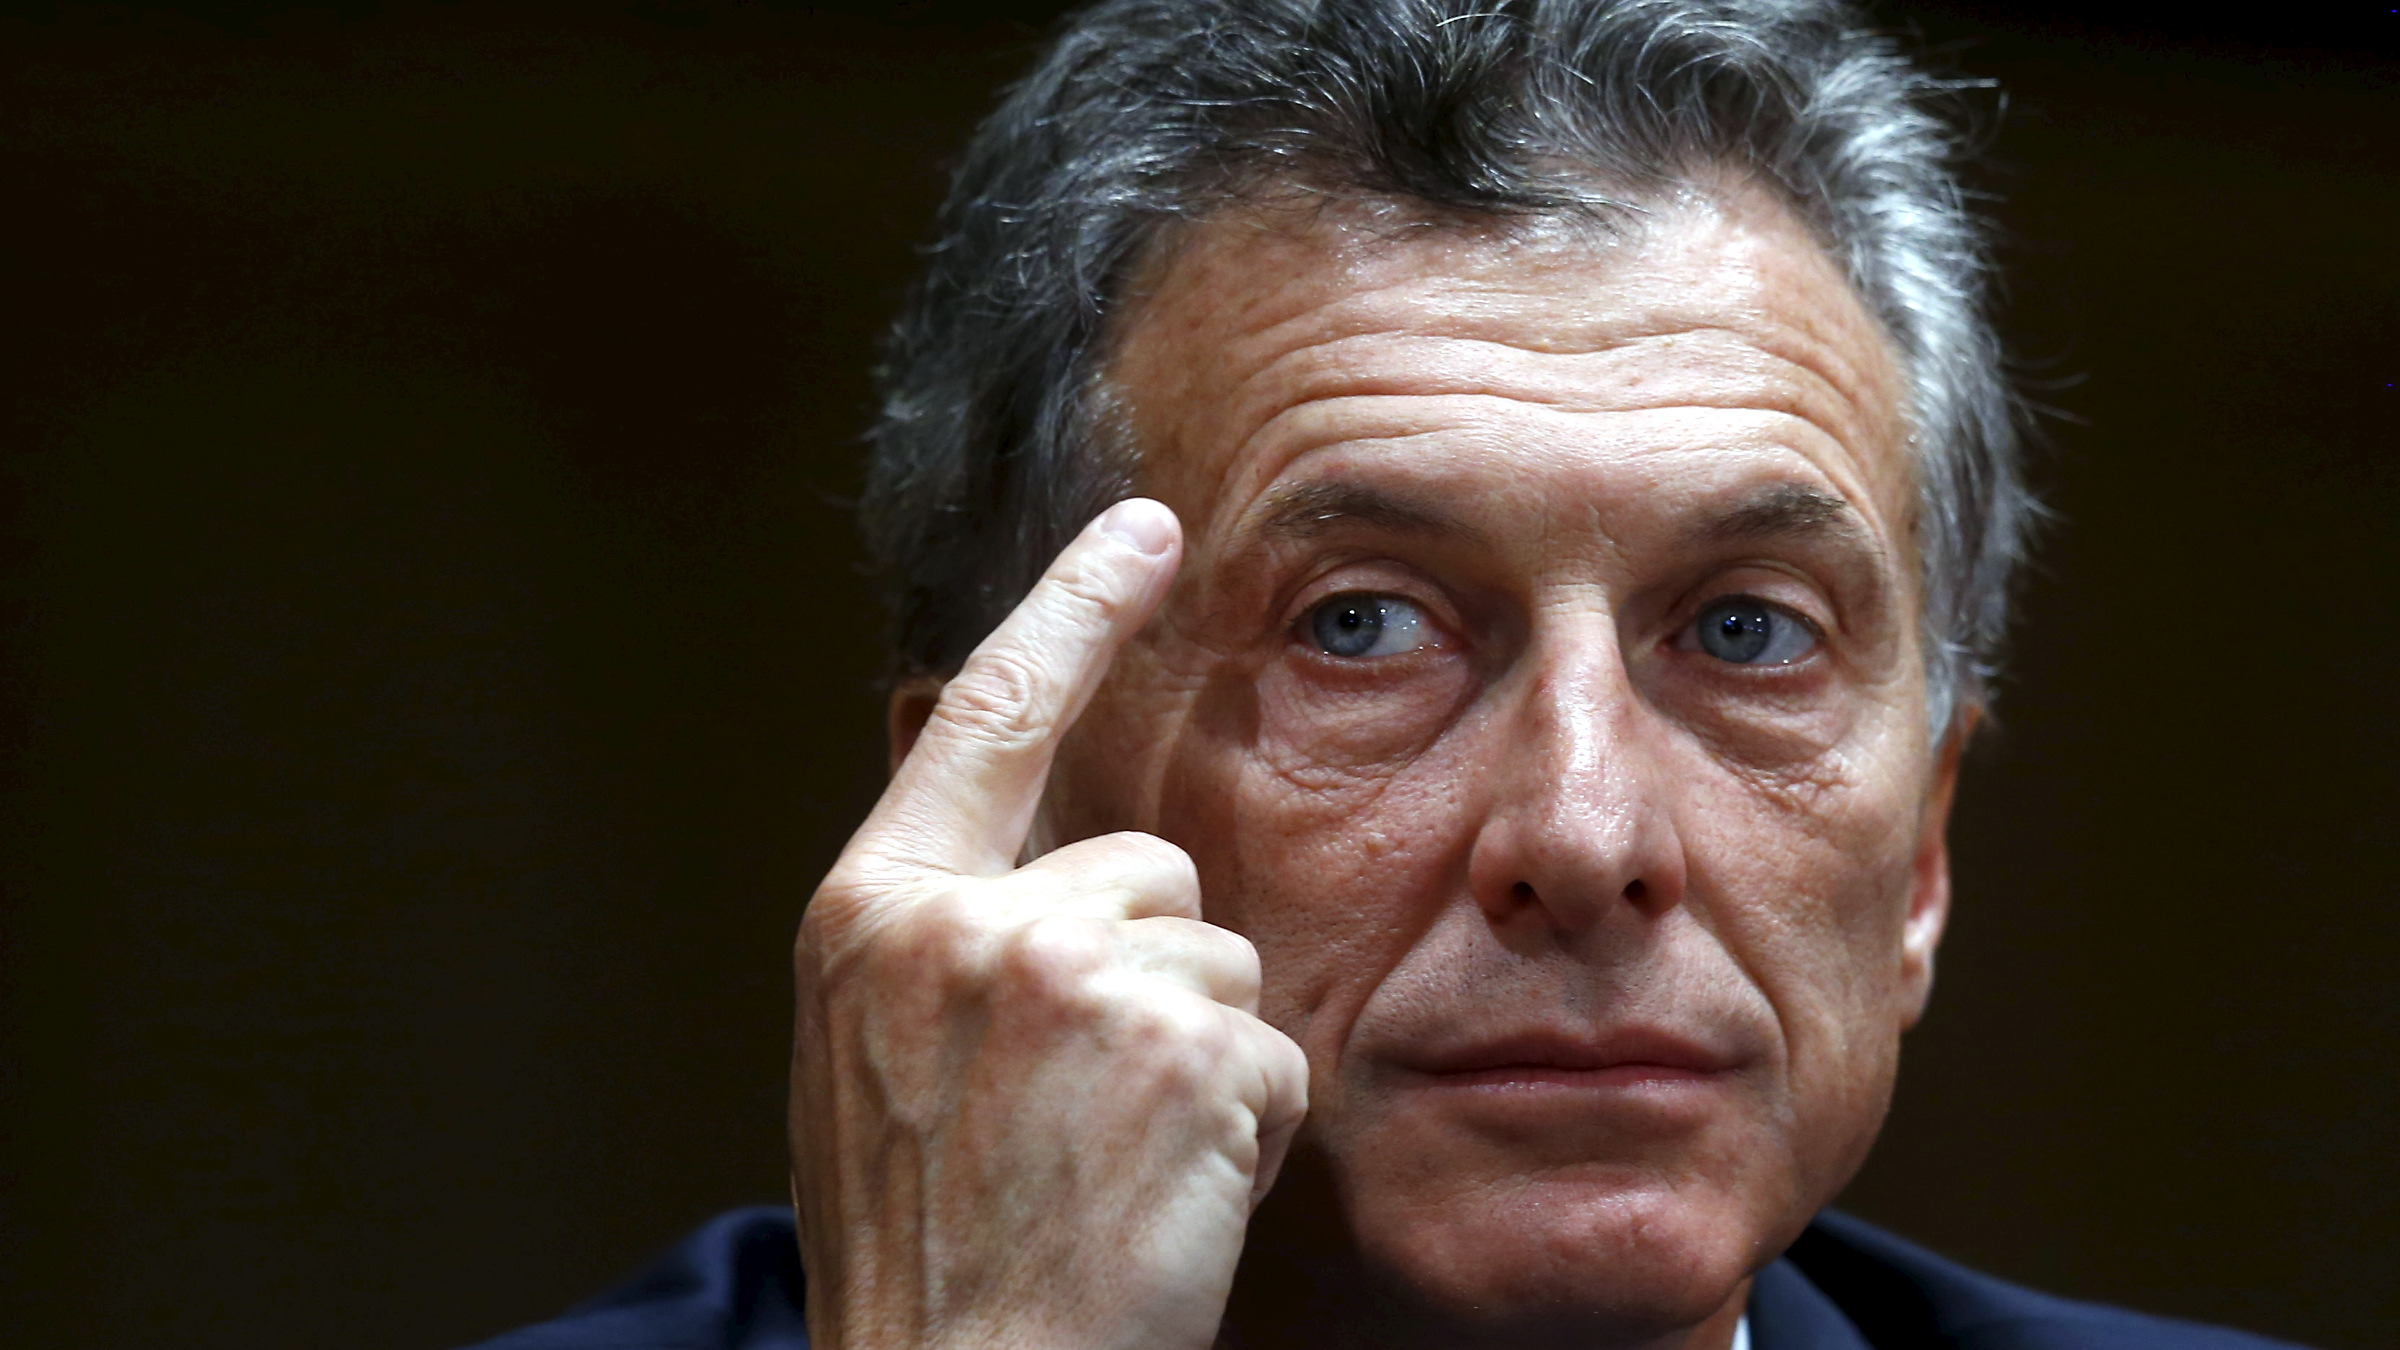 Argentina's president-elect Mauricio Macri smiles during a news conference in Buenos Aires, Argentina, November 23, 2015. Argentines assets rose broadly on Monday after conservative opposition challenger Macri scraped to victory in the presidential election, ending more than a decade of rule under the Peronist movement